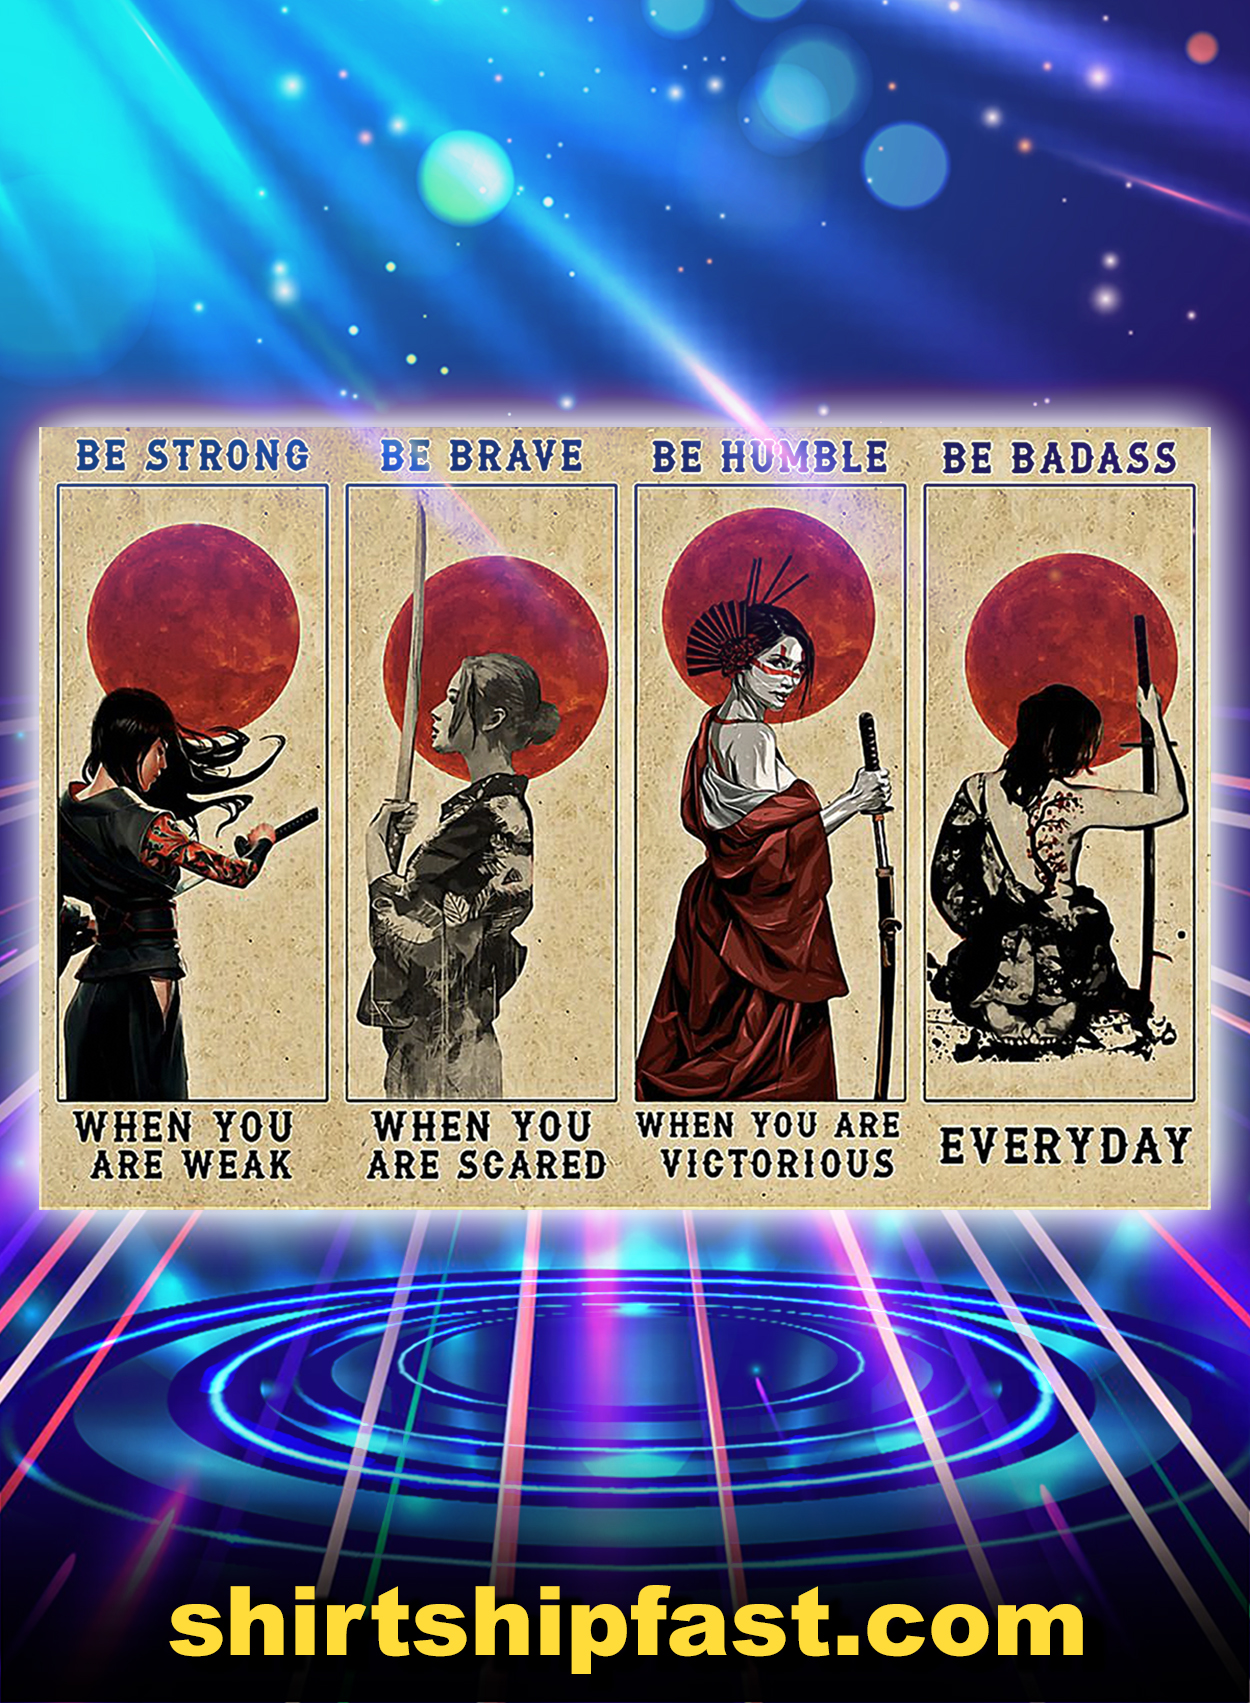 Samurai girl be strong be brave be humble be badass poster - A3